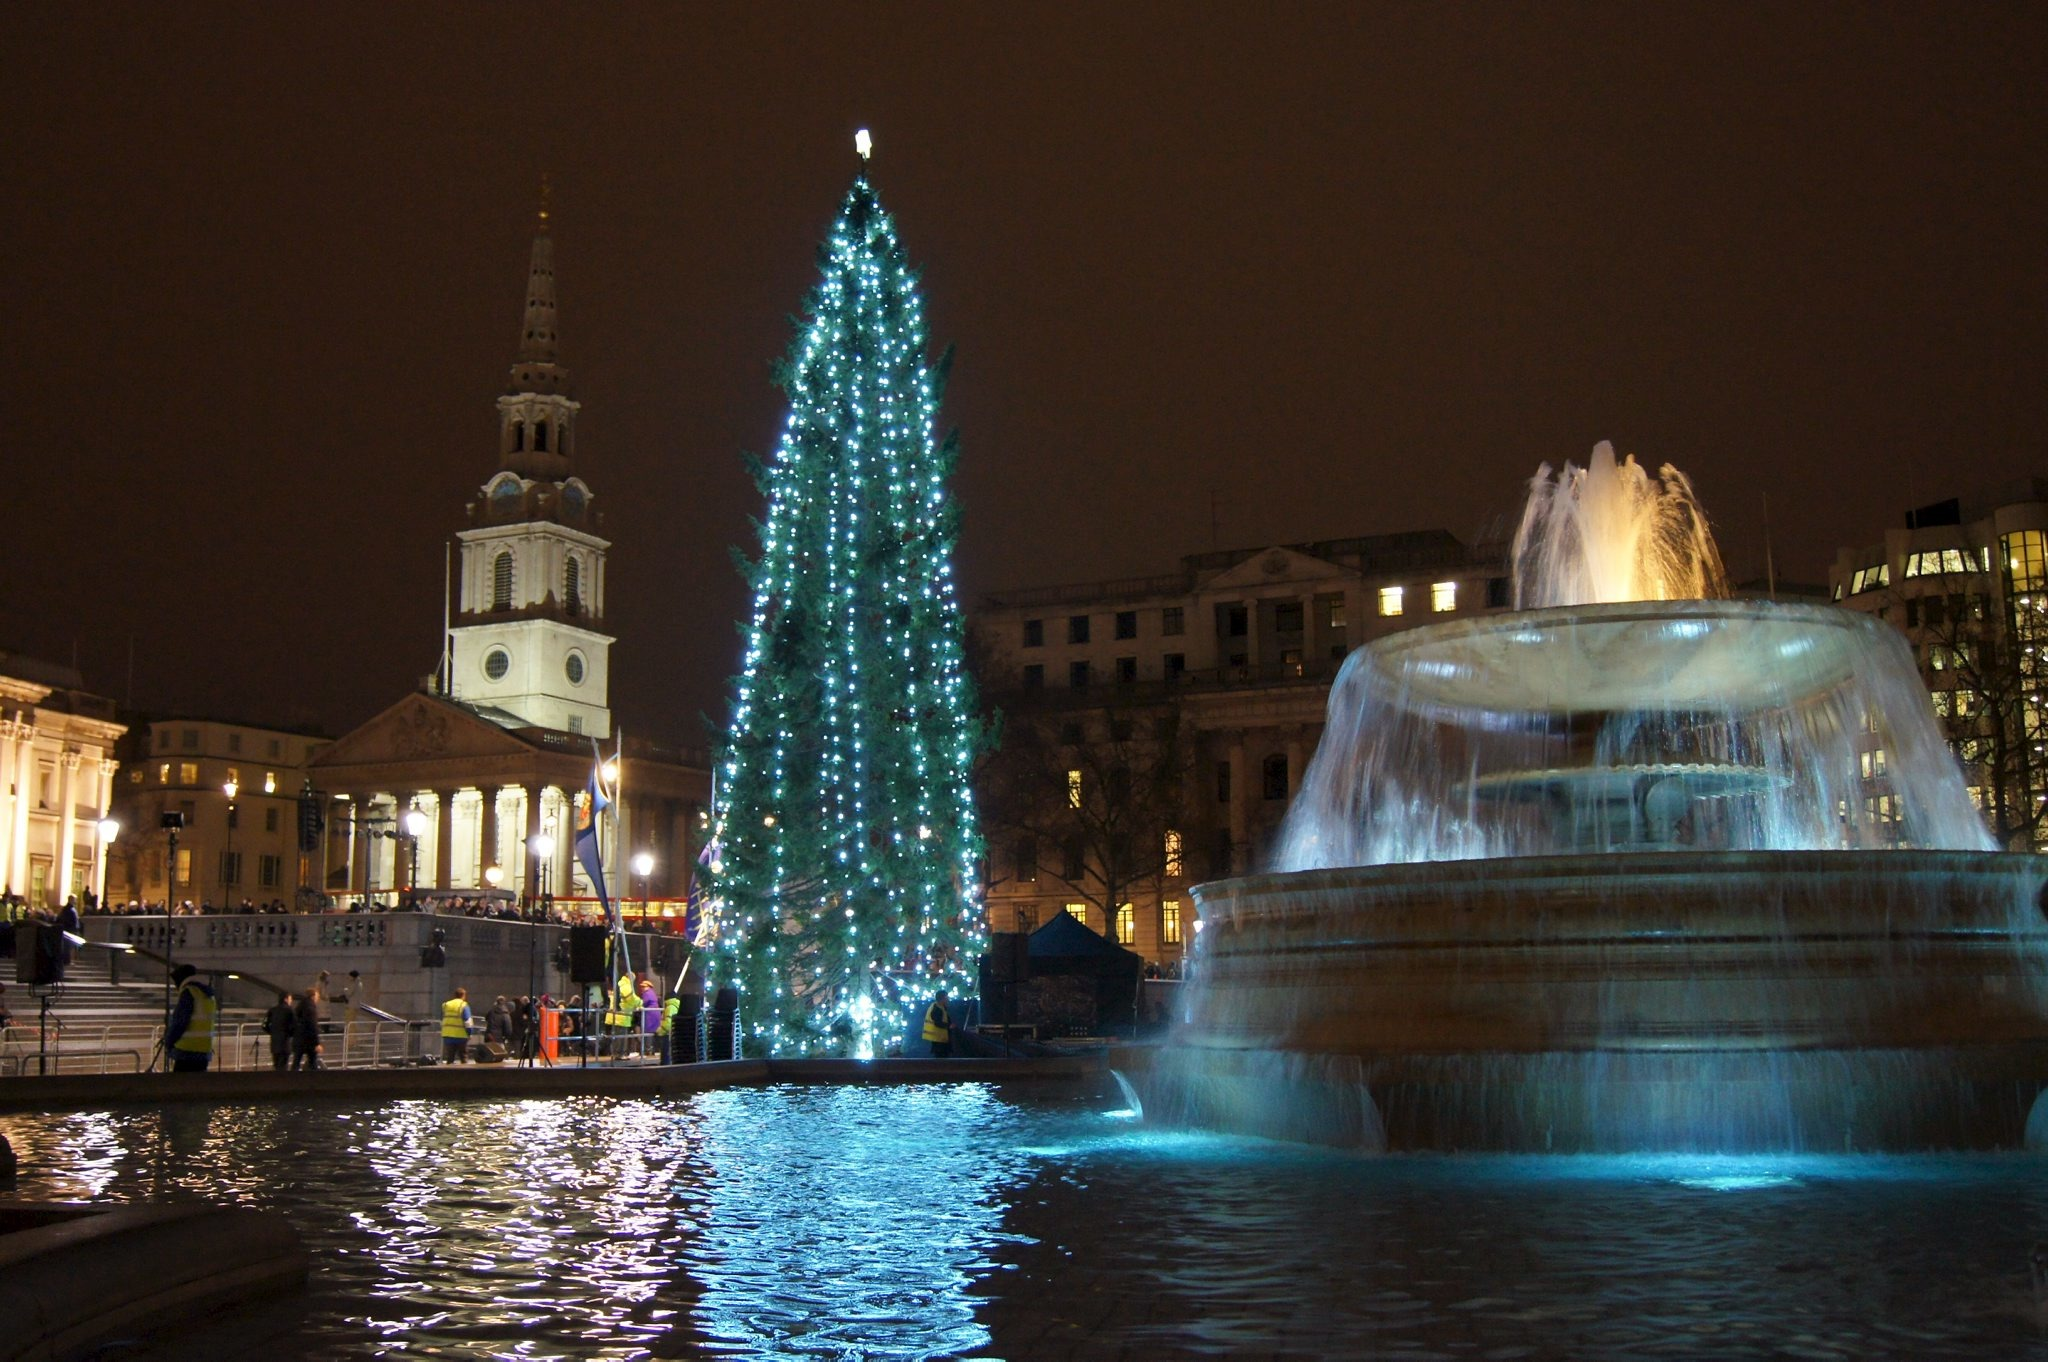 Christmas in Trafalgar Square | Things to do in London